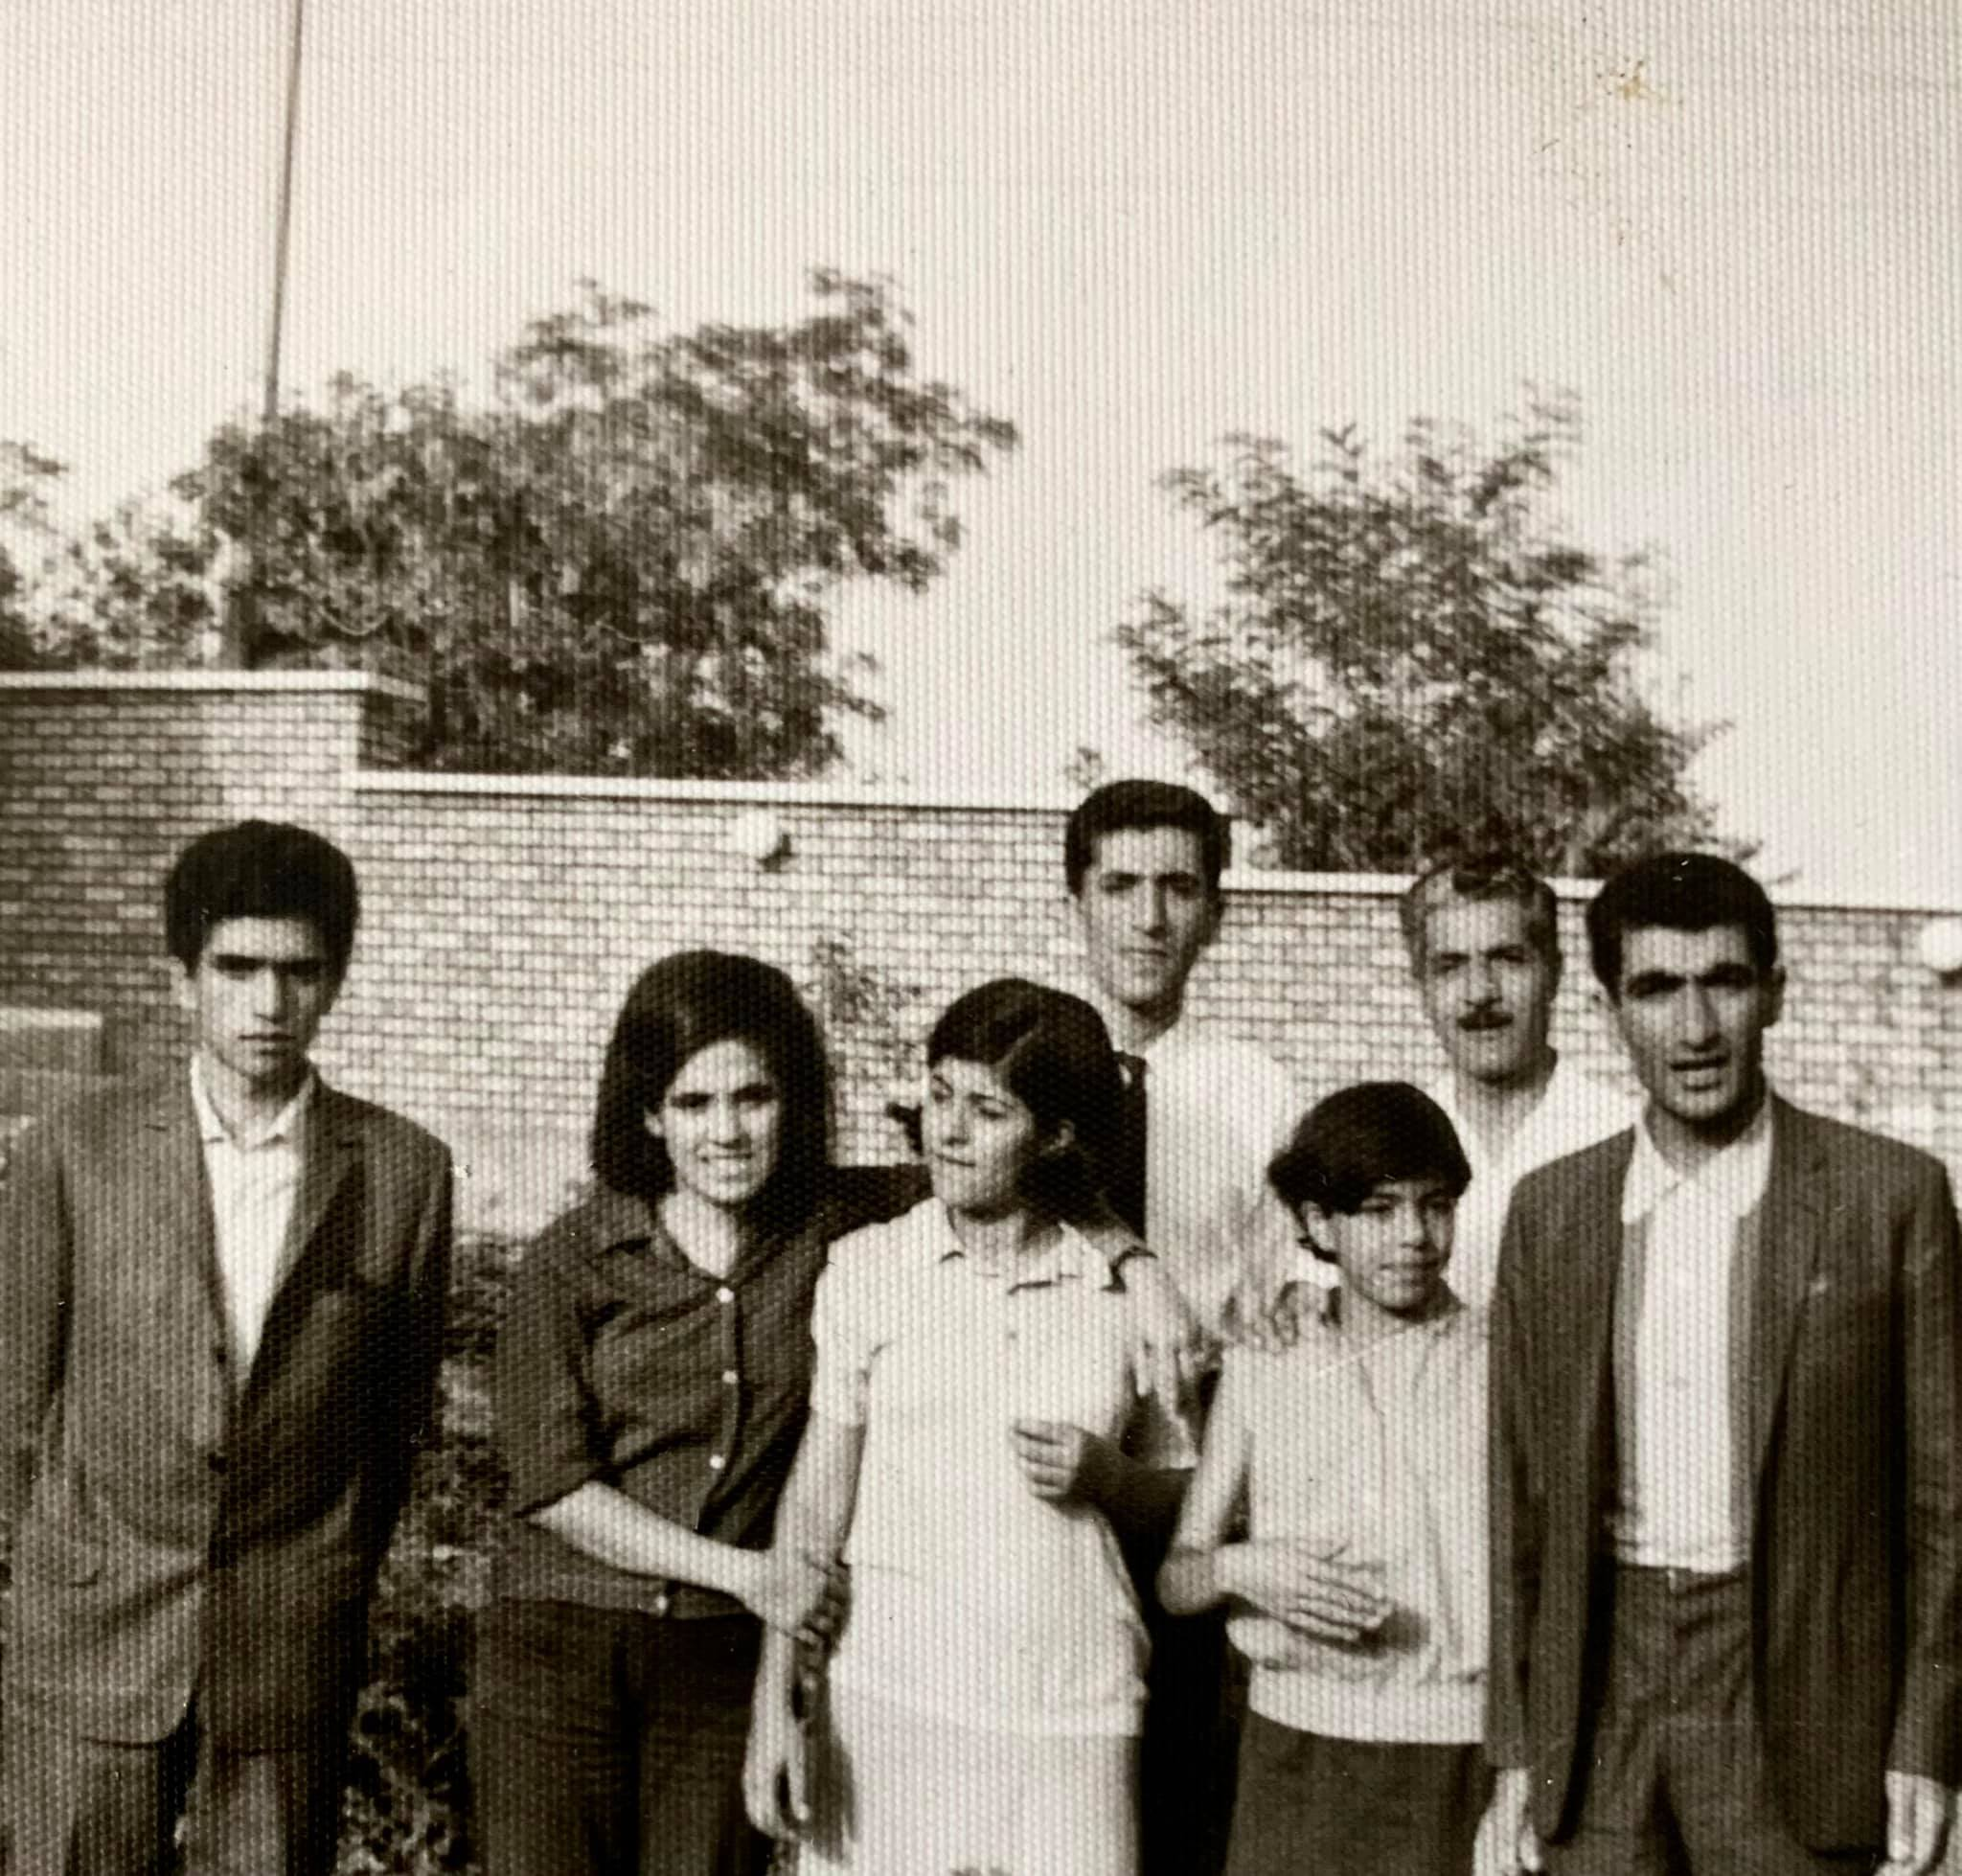 Throwback Thursday: A family photo from the early 1960s